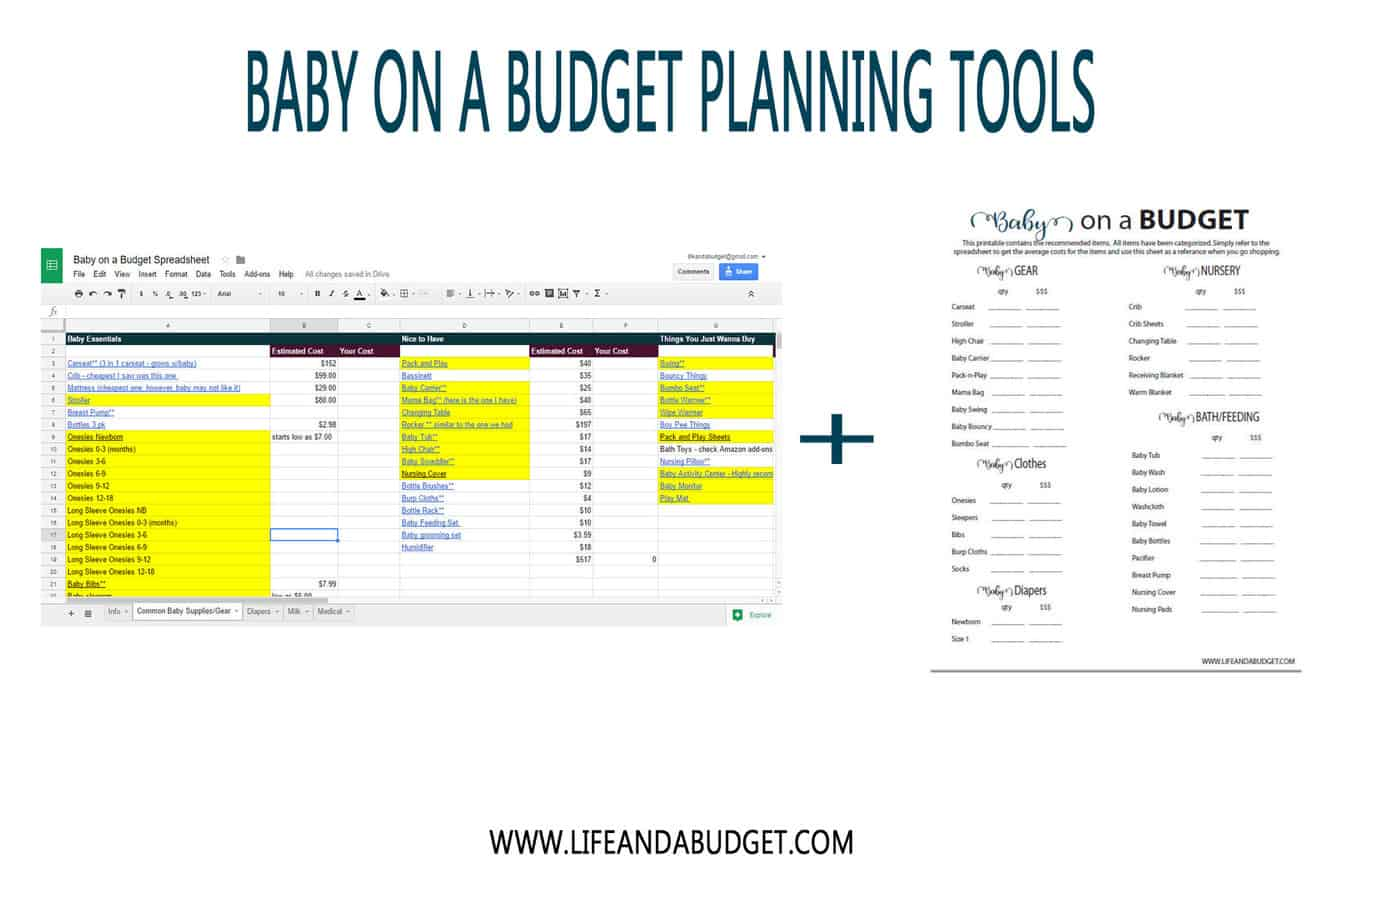 Baby On A Budget Planning Tools